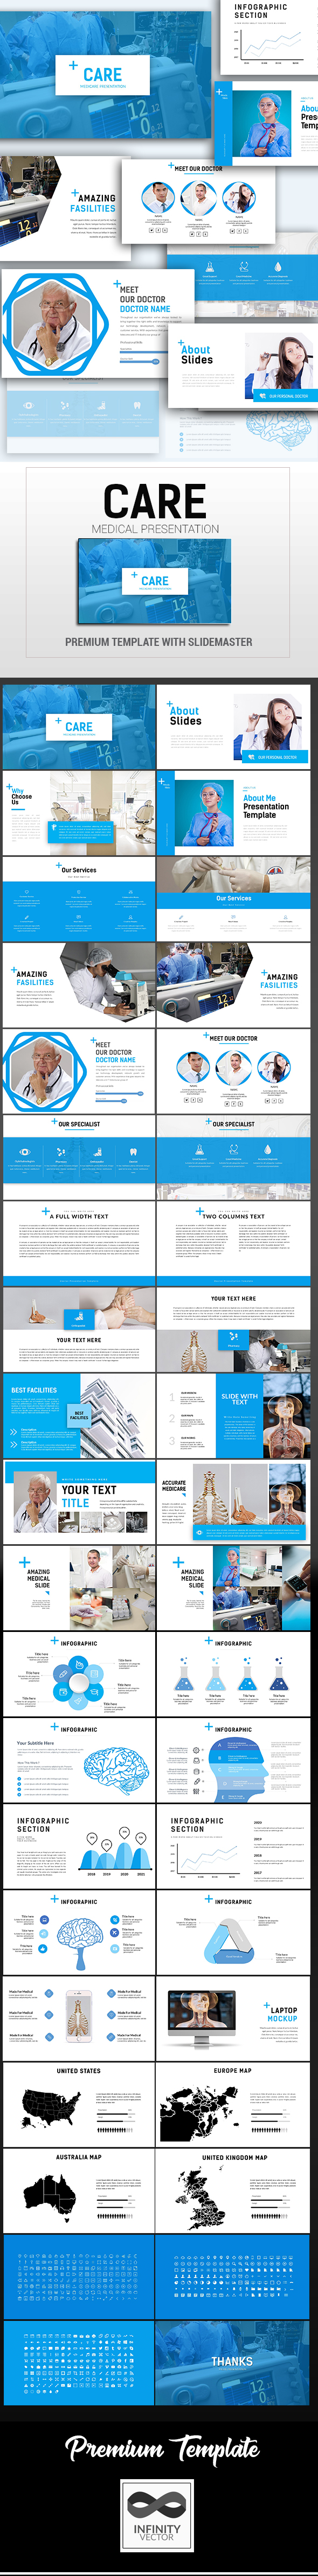 Care Medical Presentation - PowerPoint Templates Presentation Templates